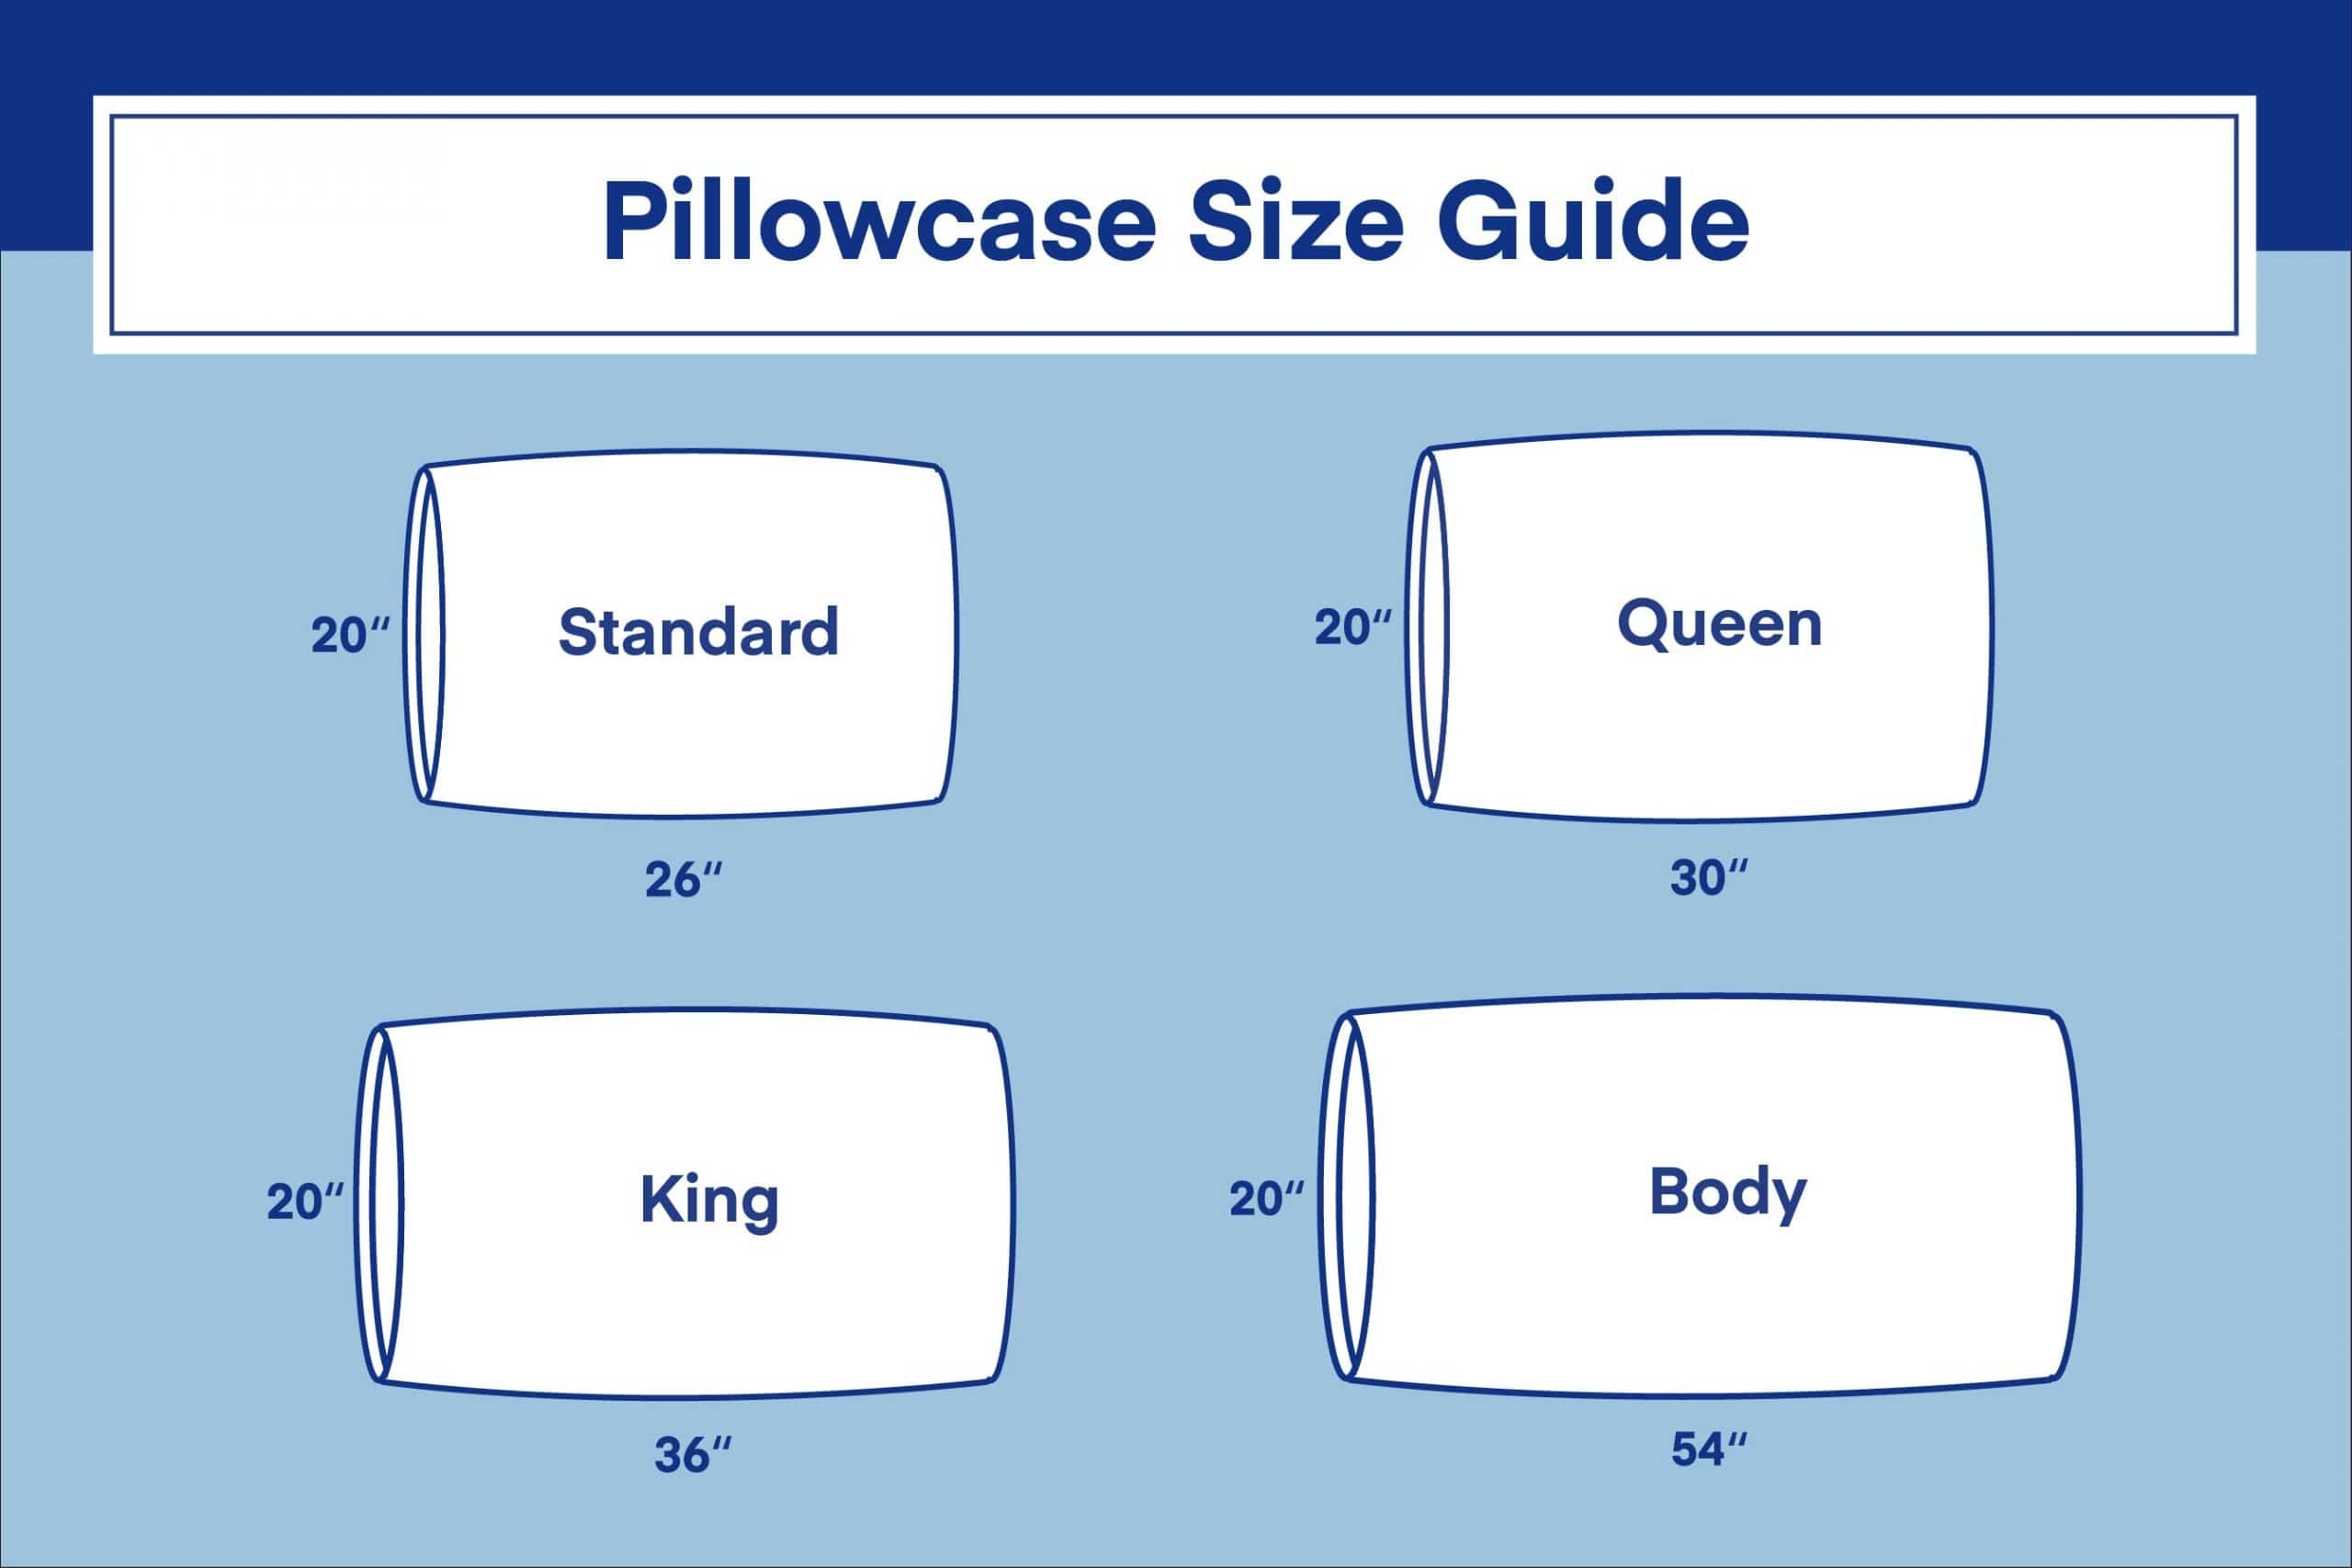 Pillowcase Sizes and Dimensions